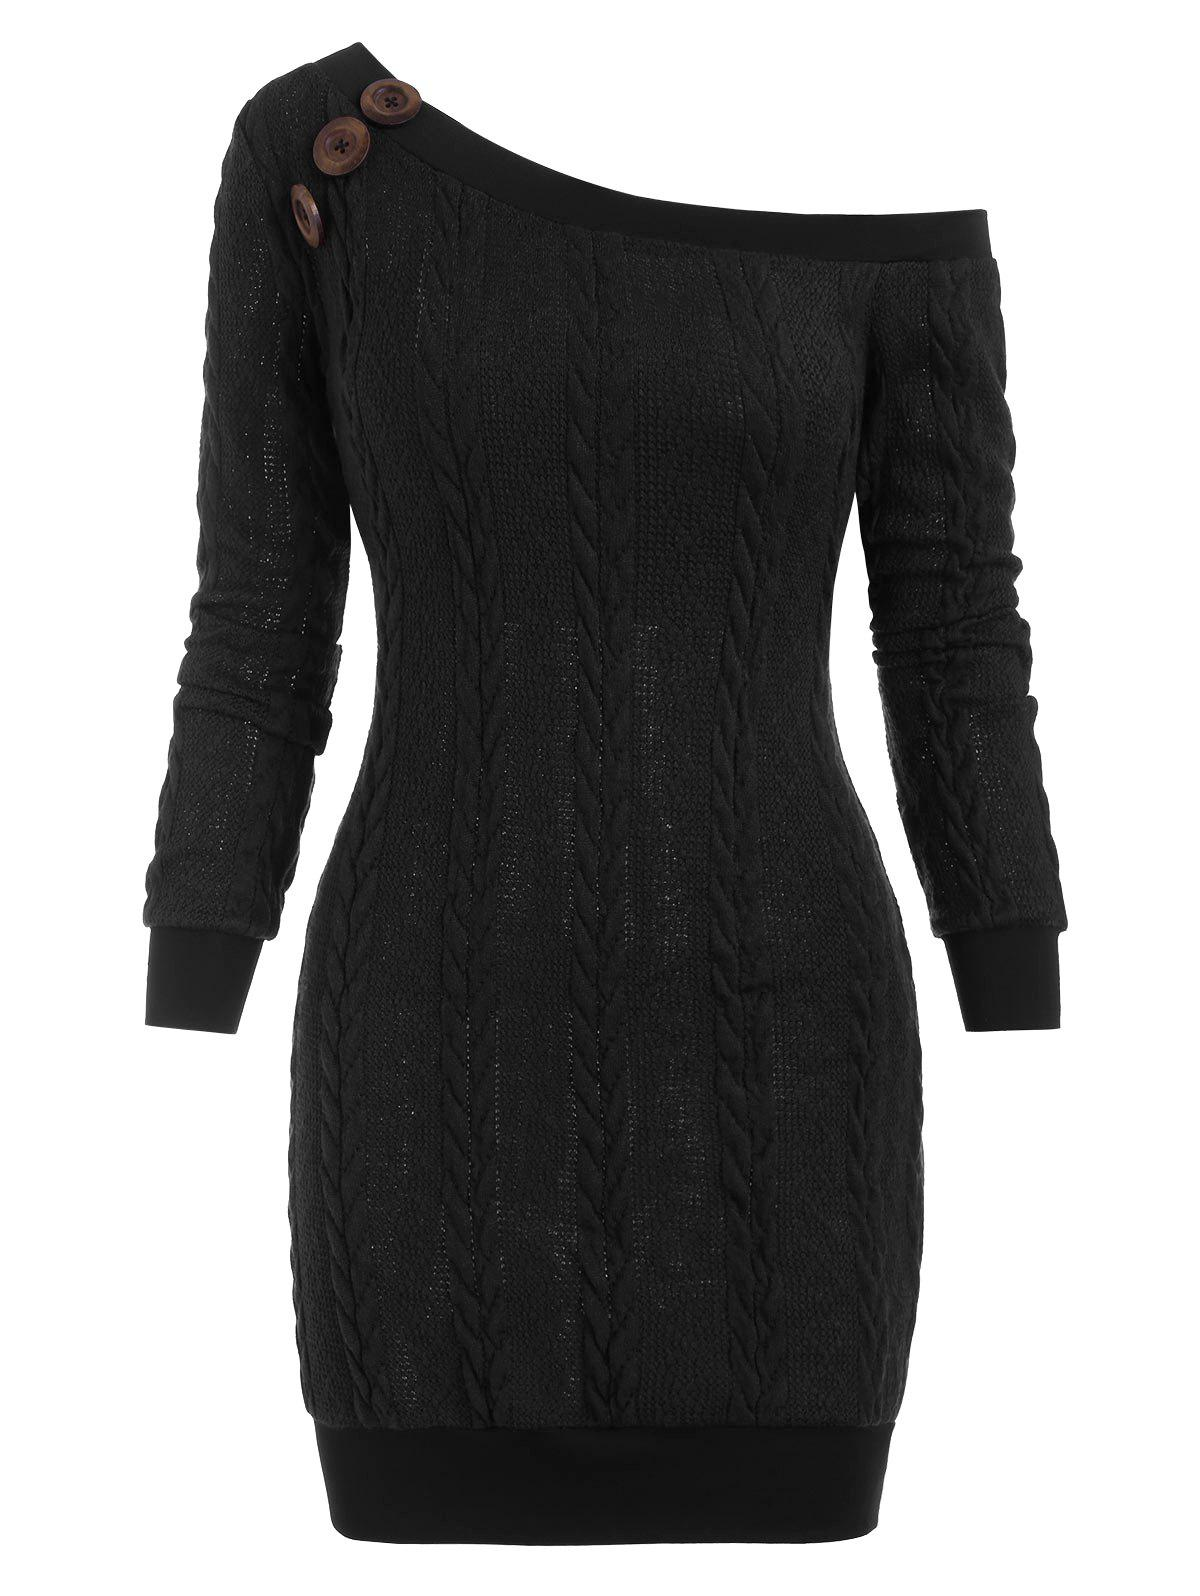 New Cable Knit Skew Neck Sweater Dress